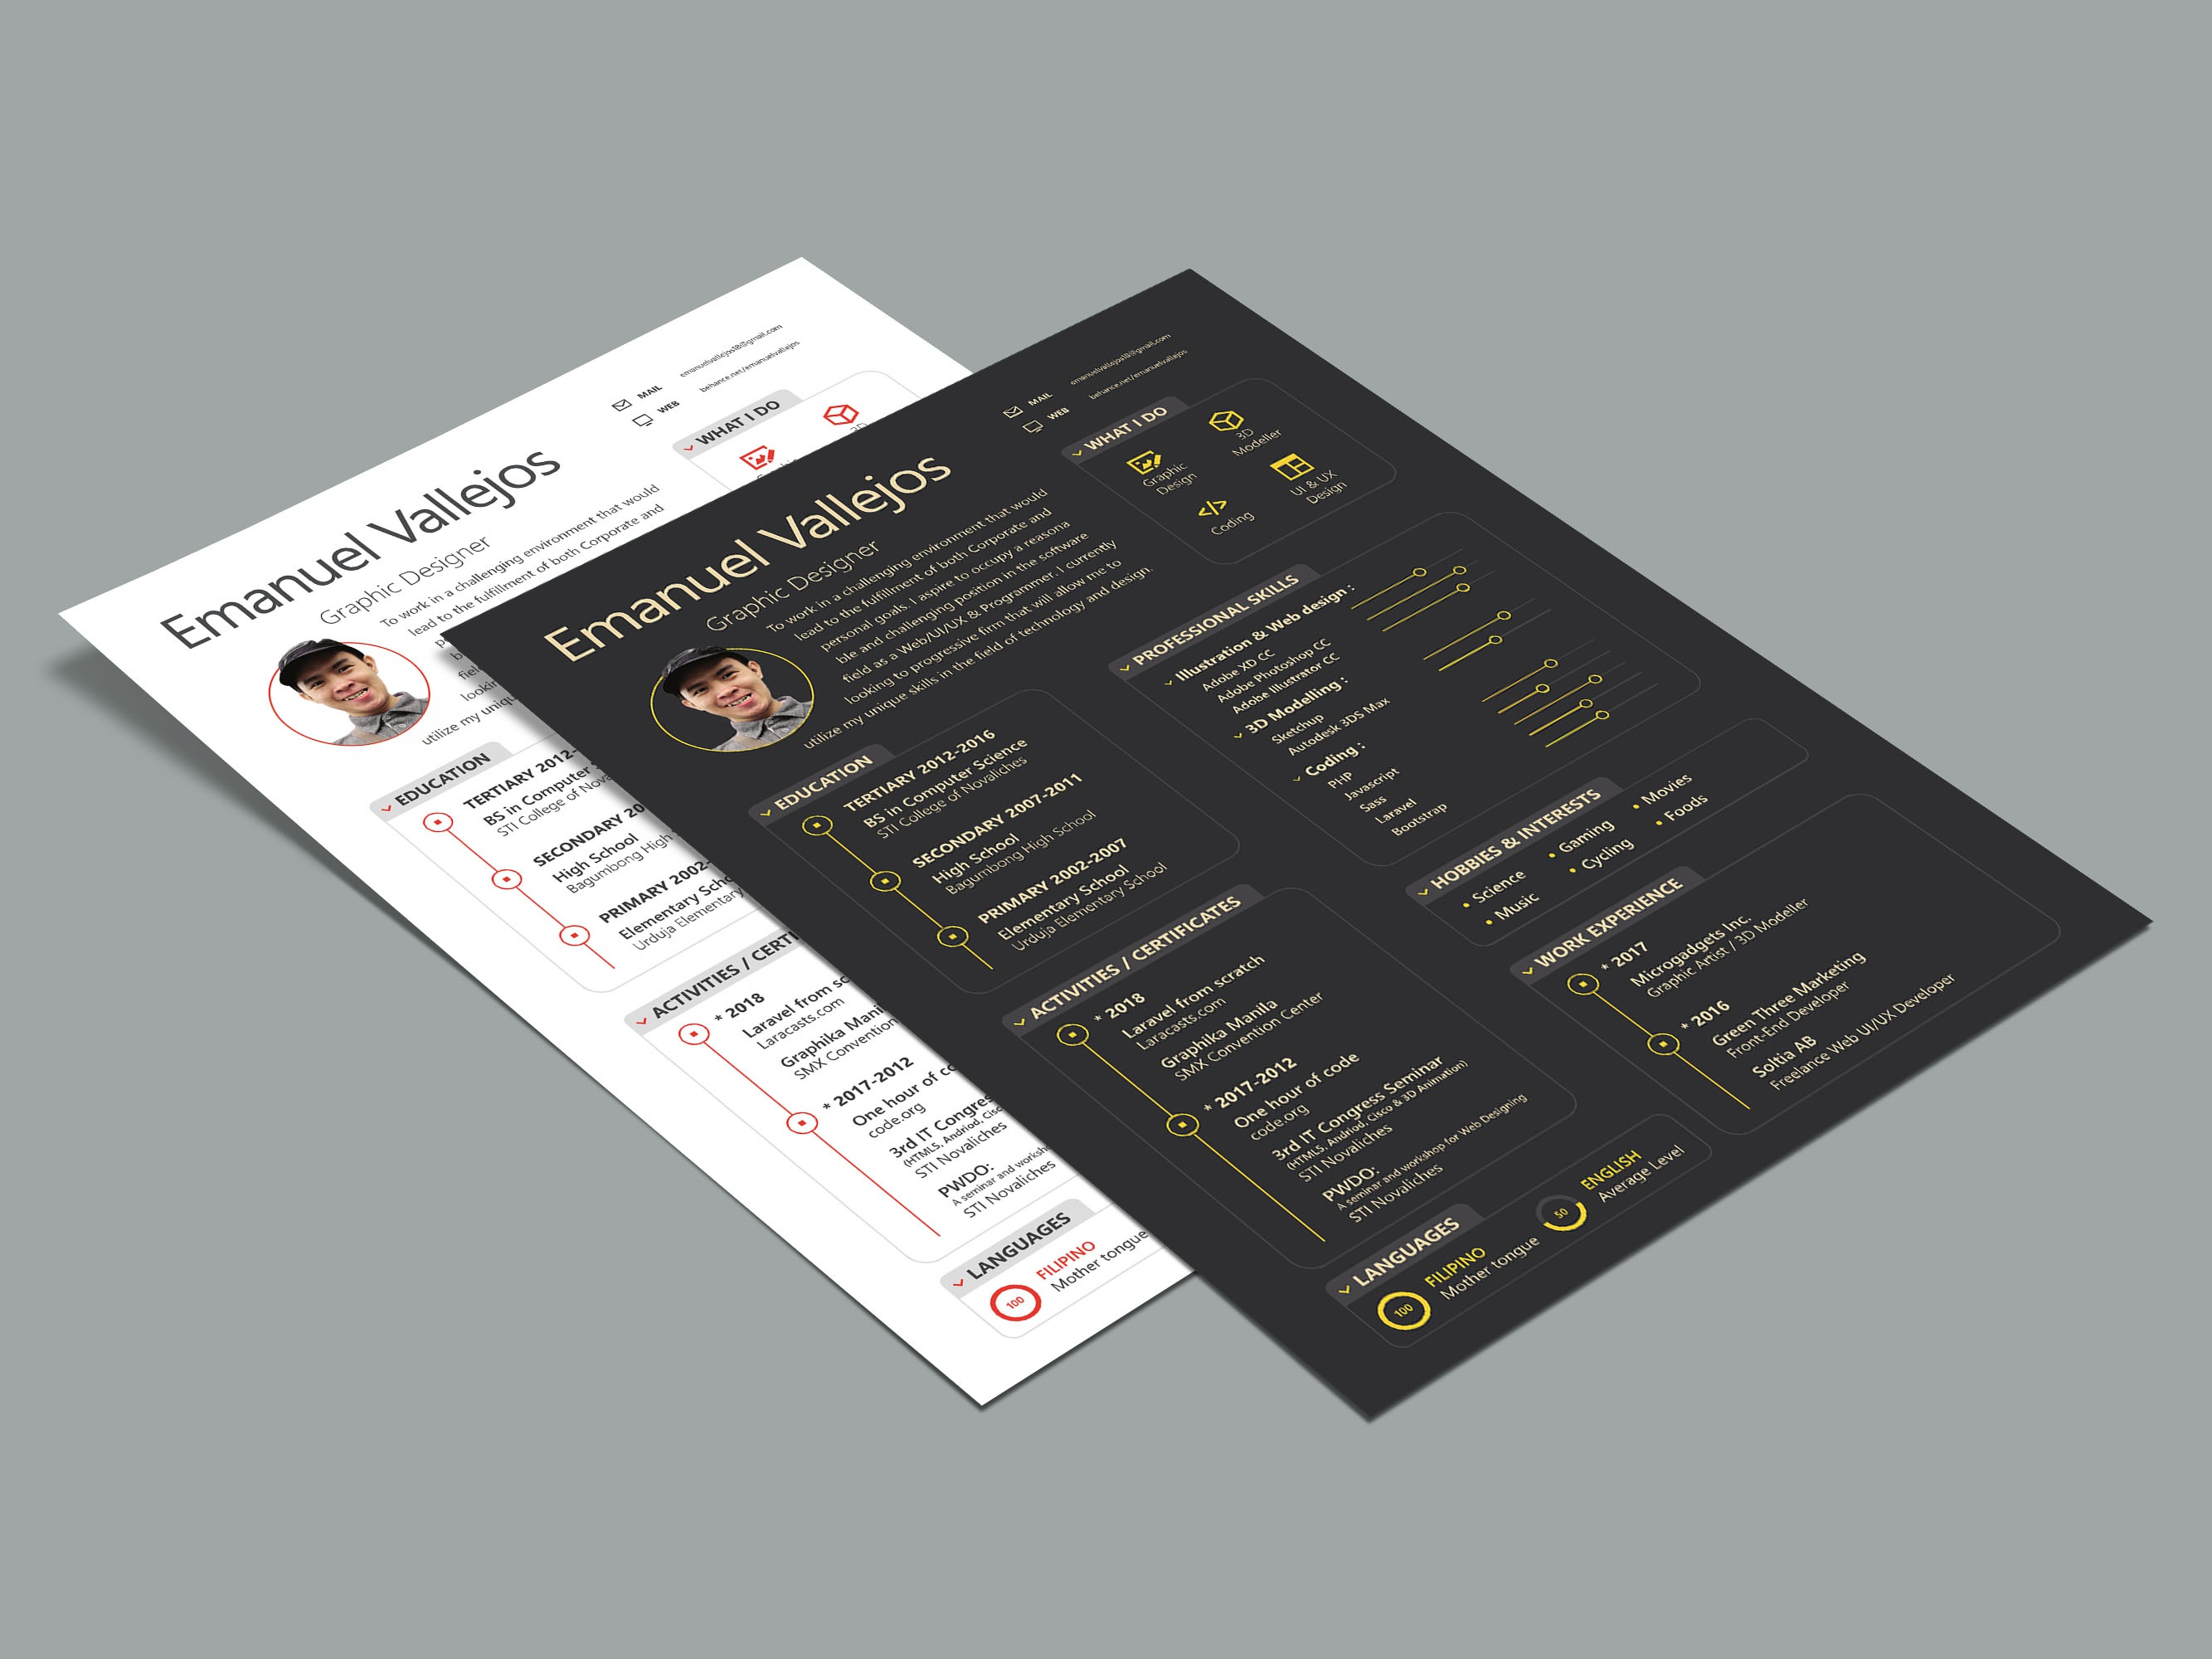 Free Illustrator Resume Template by James Han on Dribbble